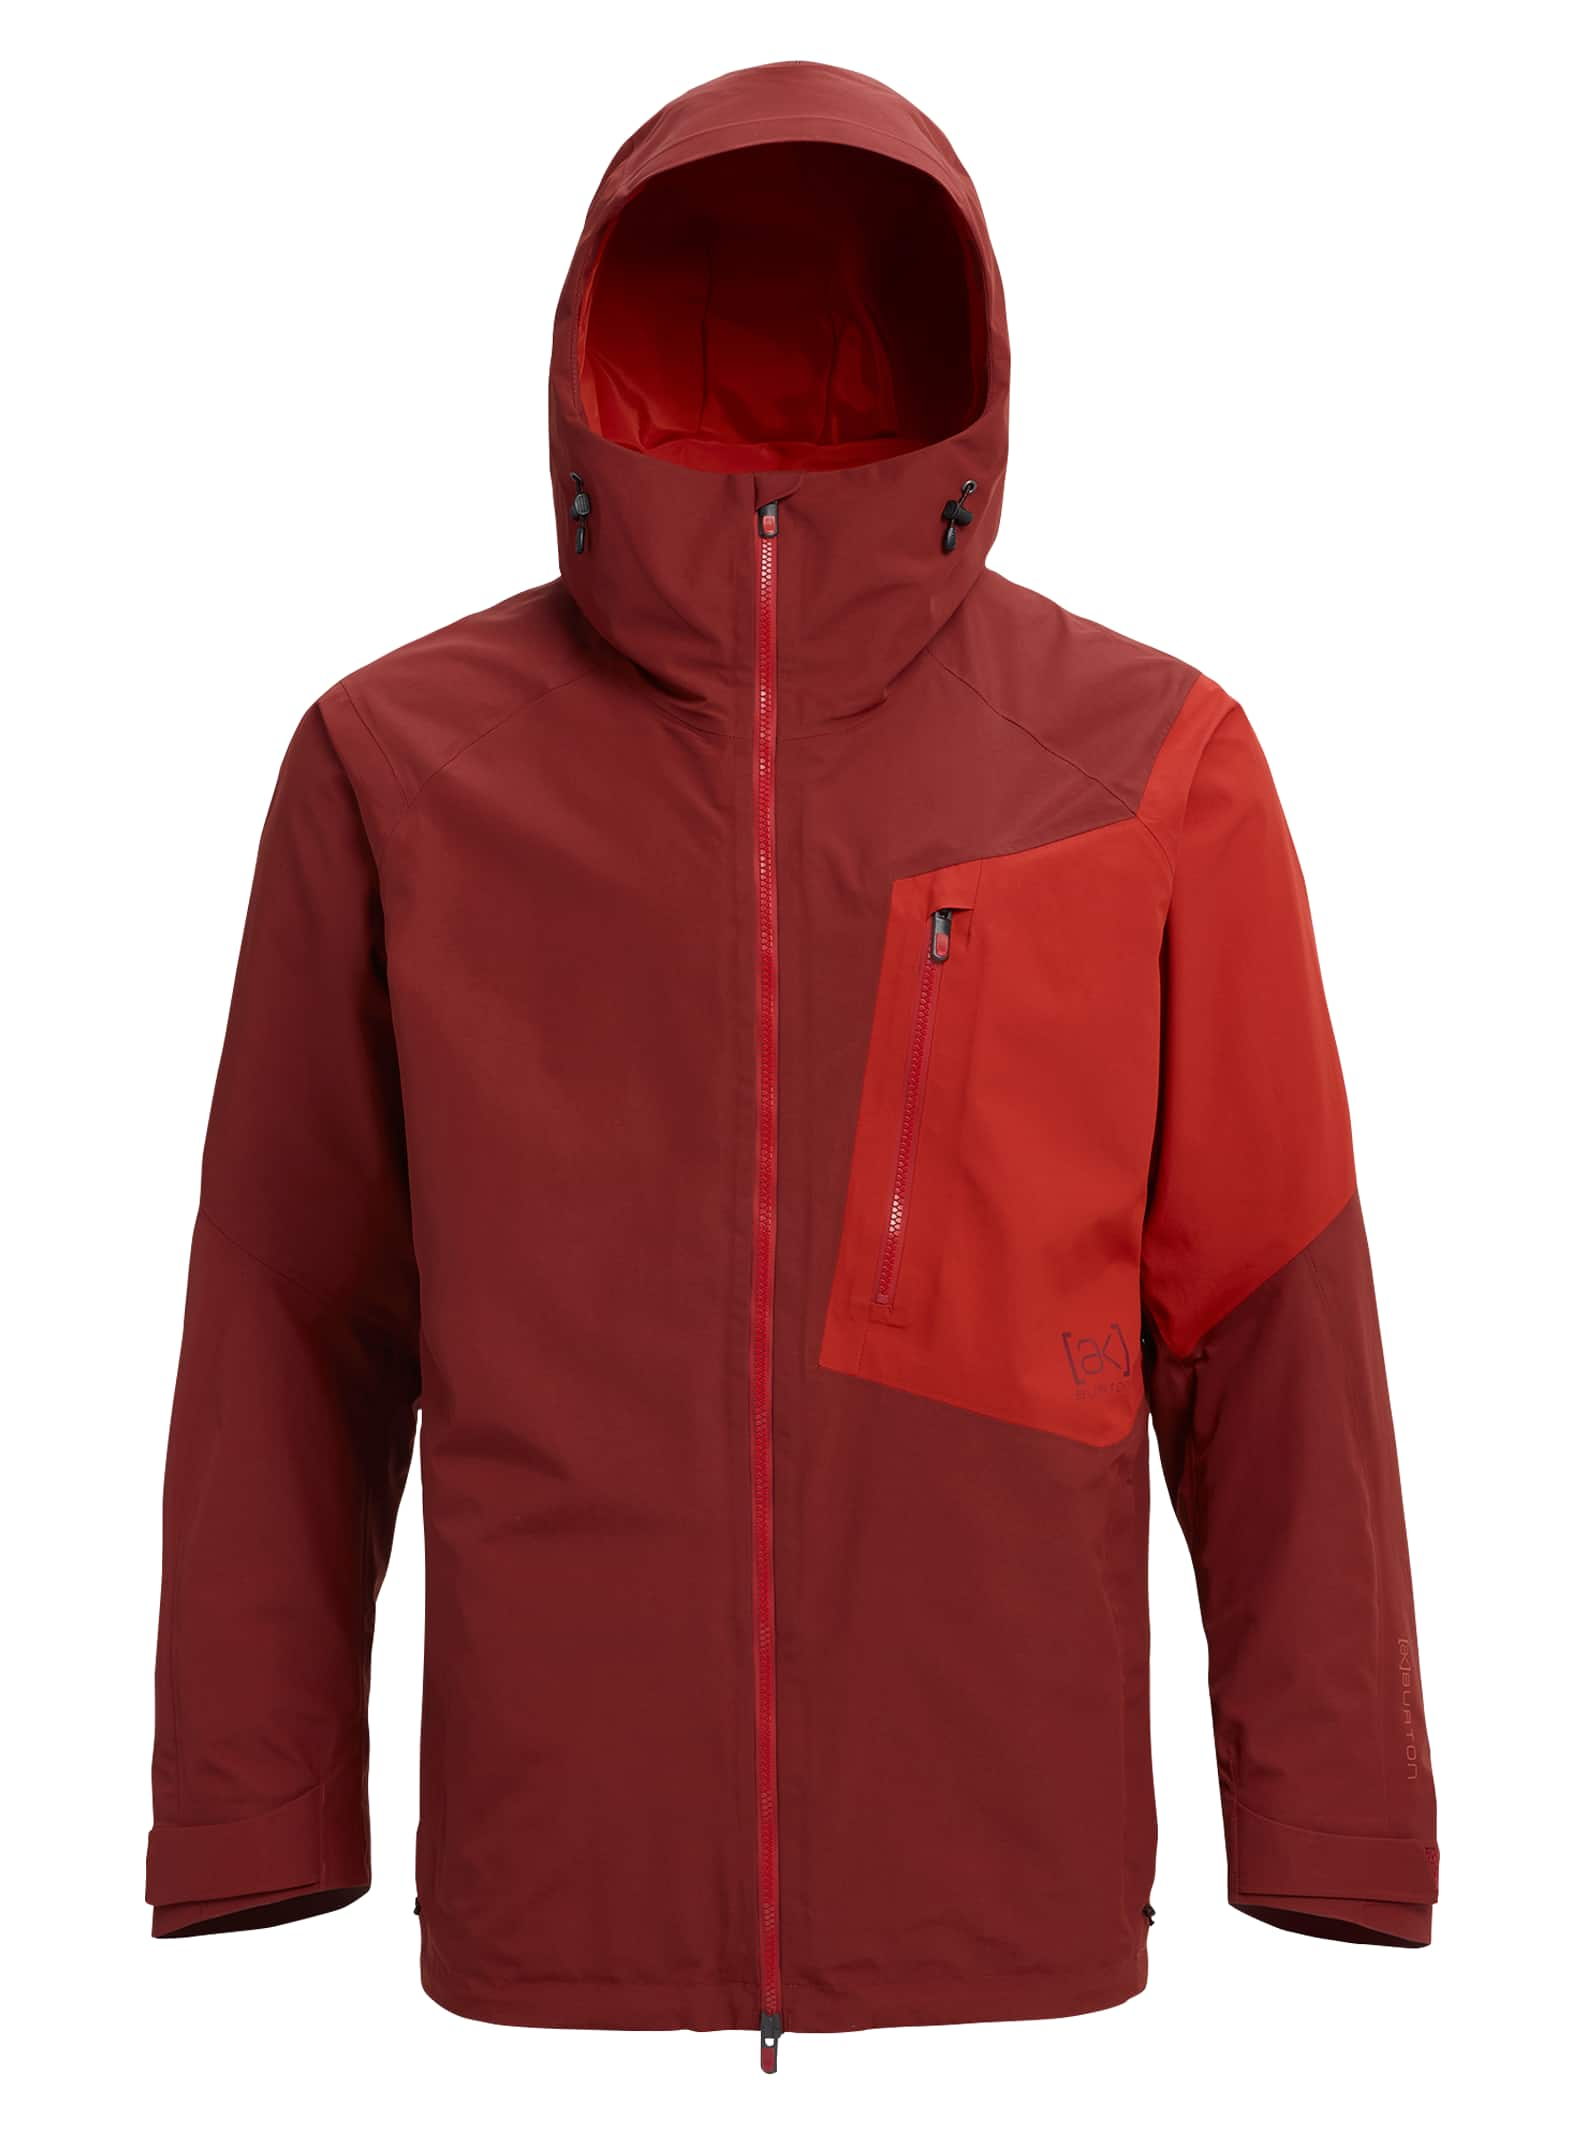 Mens snowboard jackets burton snowboards gumiabroncs Image collections